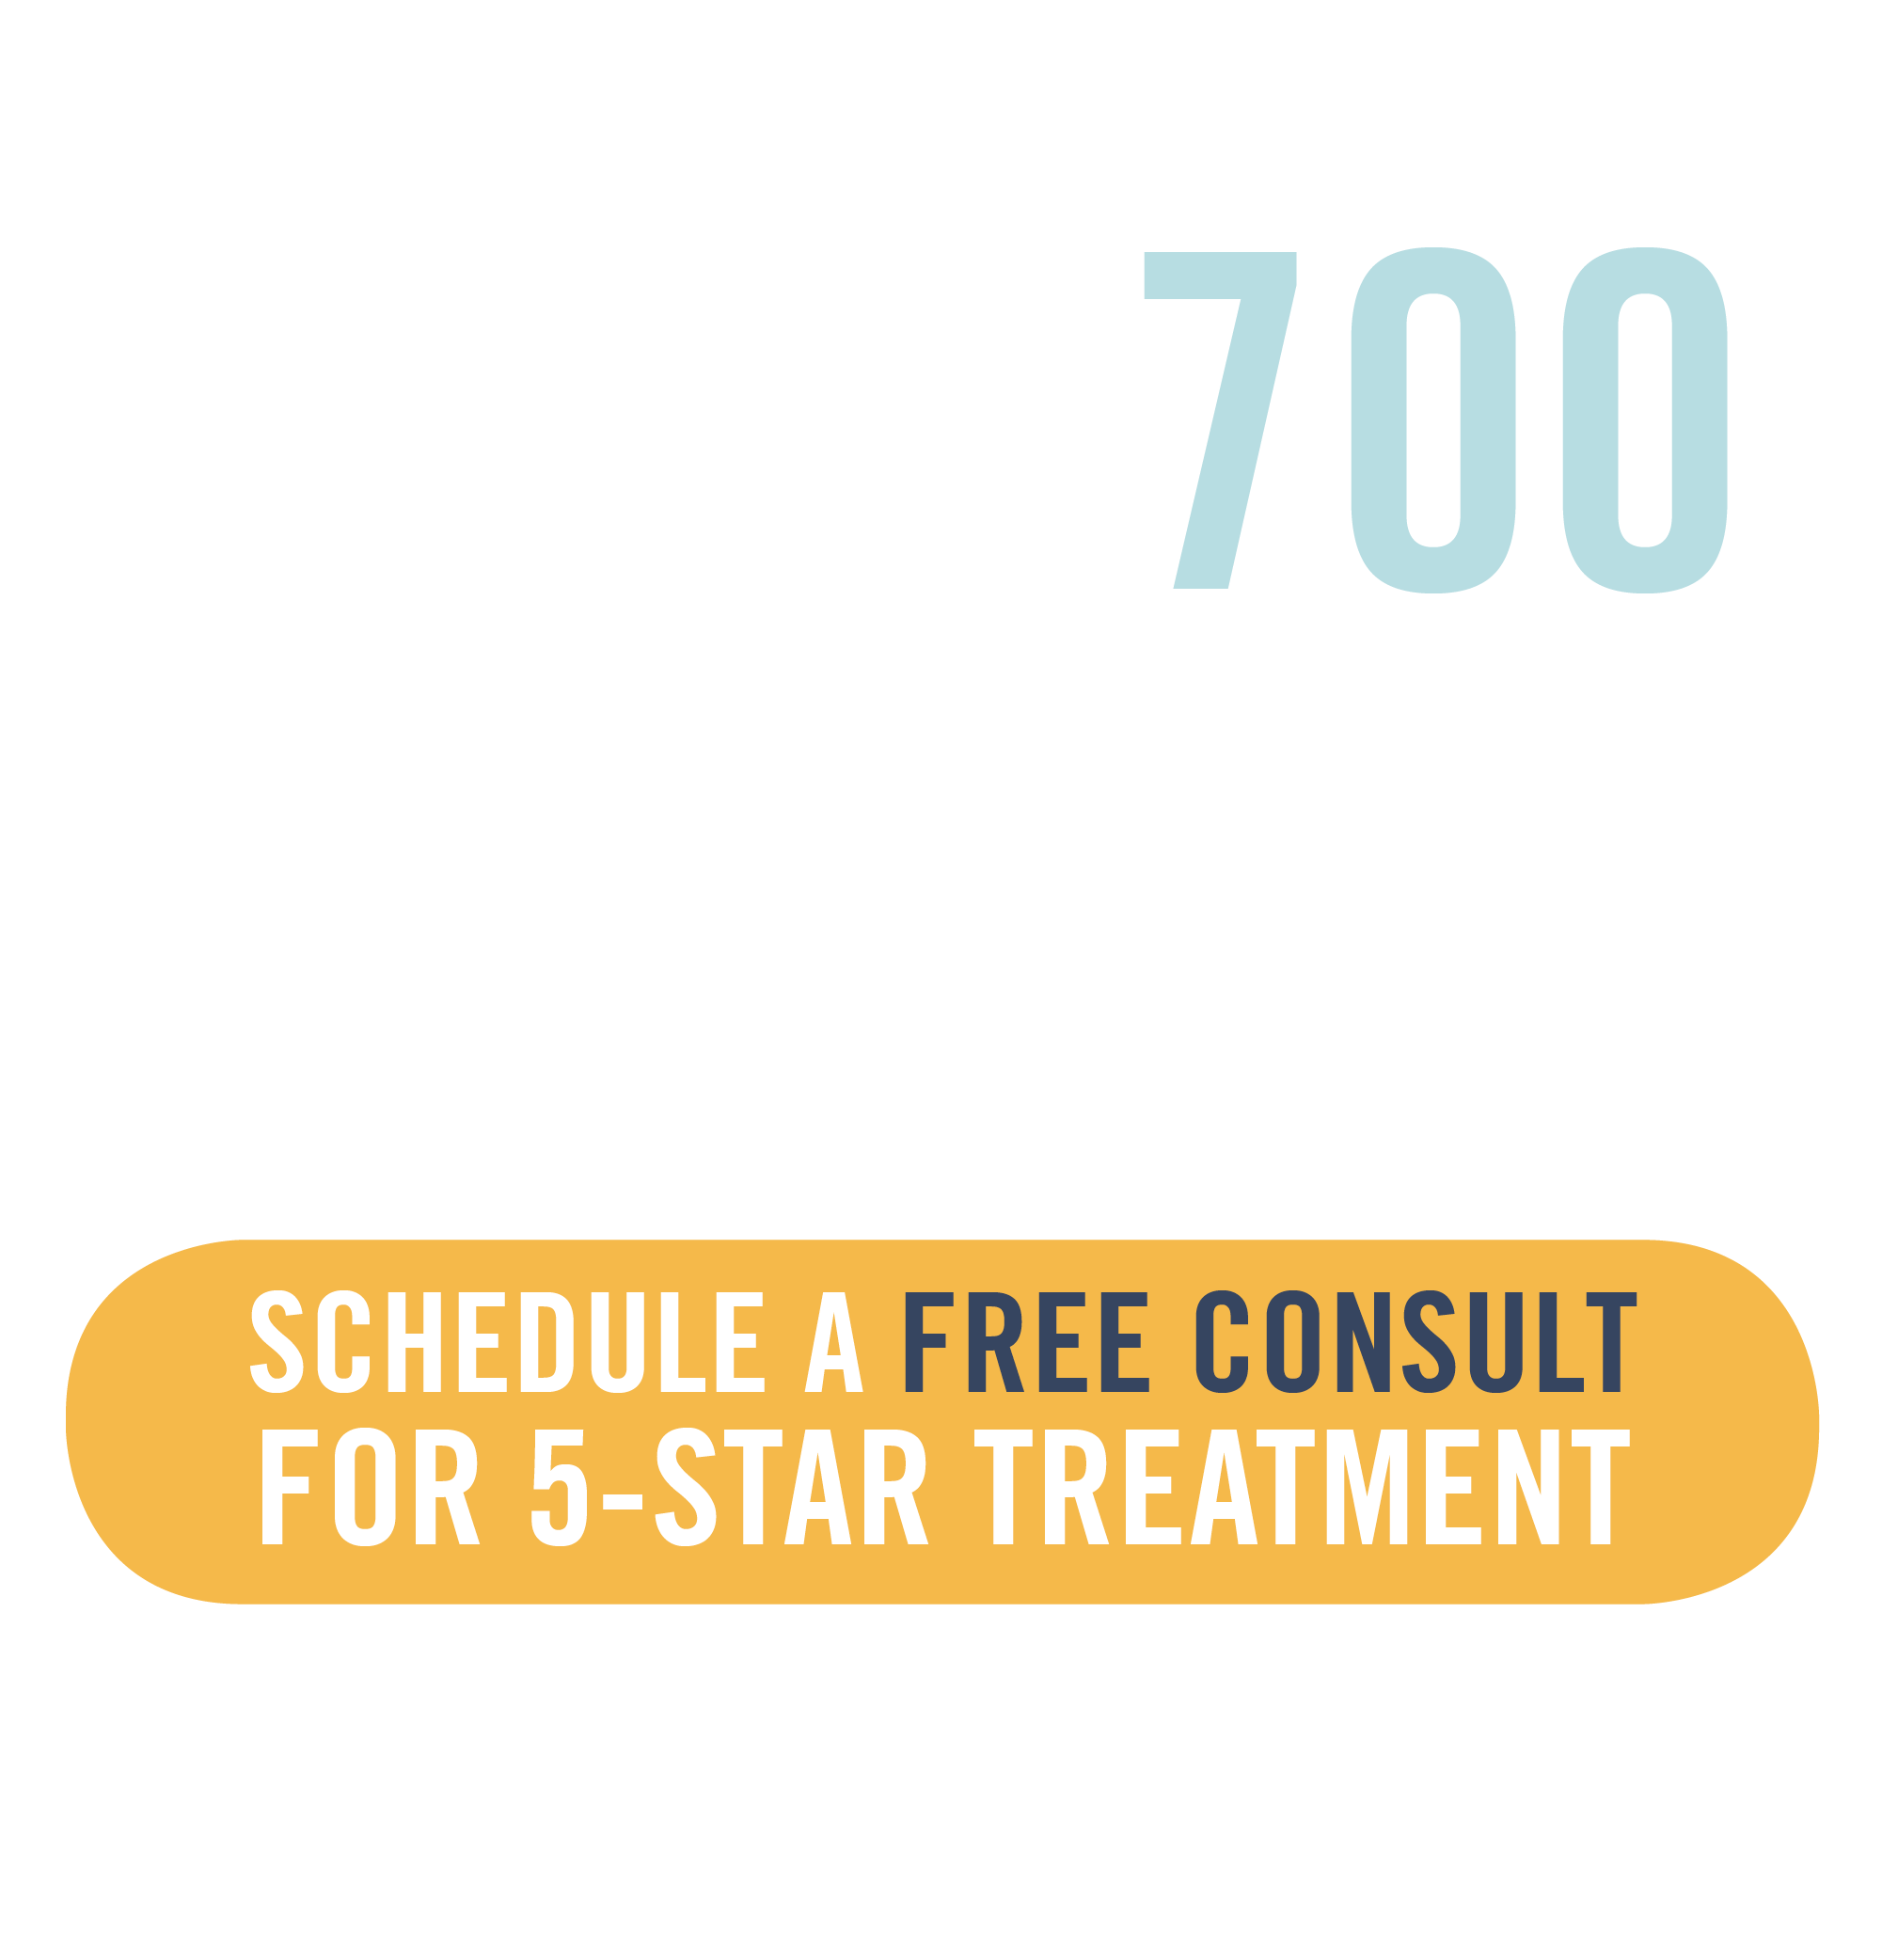 Over 700 five star reviews on google